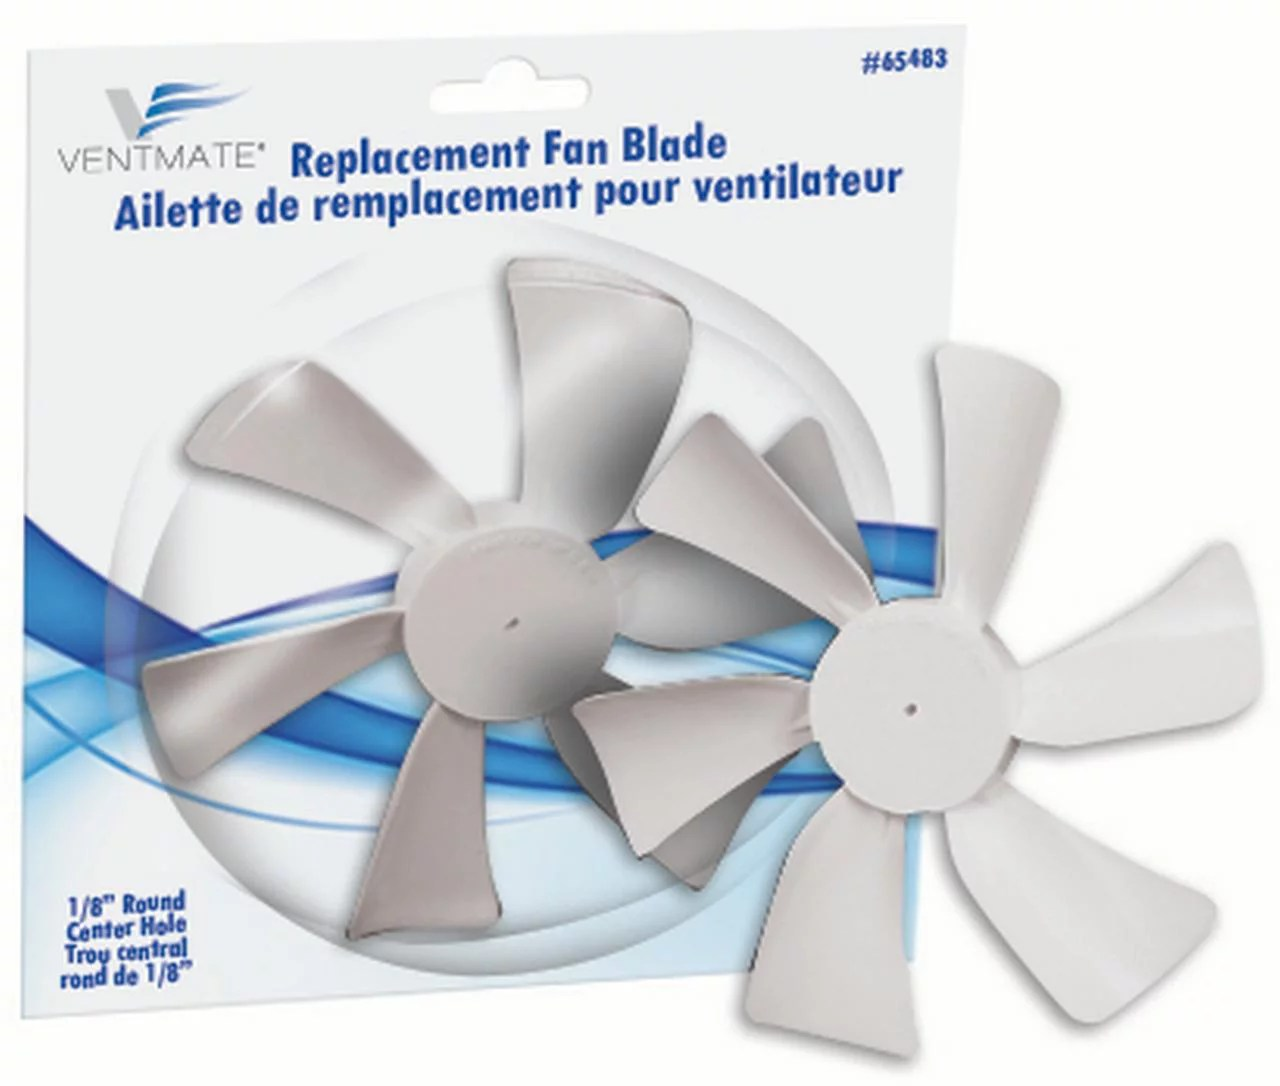 Exhaust Fan Roof Vent Ventmate 65484 Exhaust Fan Blade For 12 Volt Jensen Roof Vents